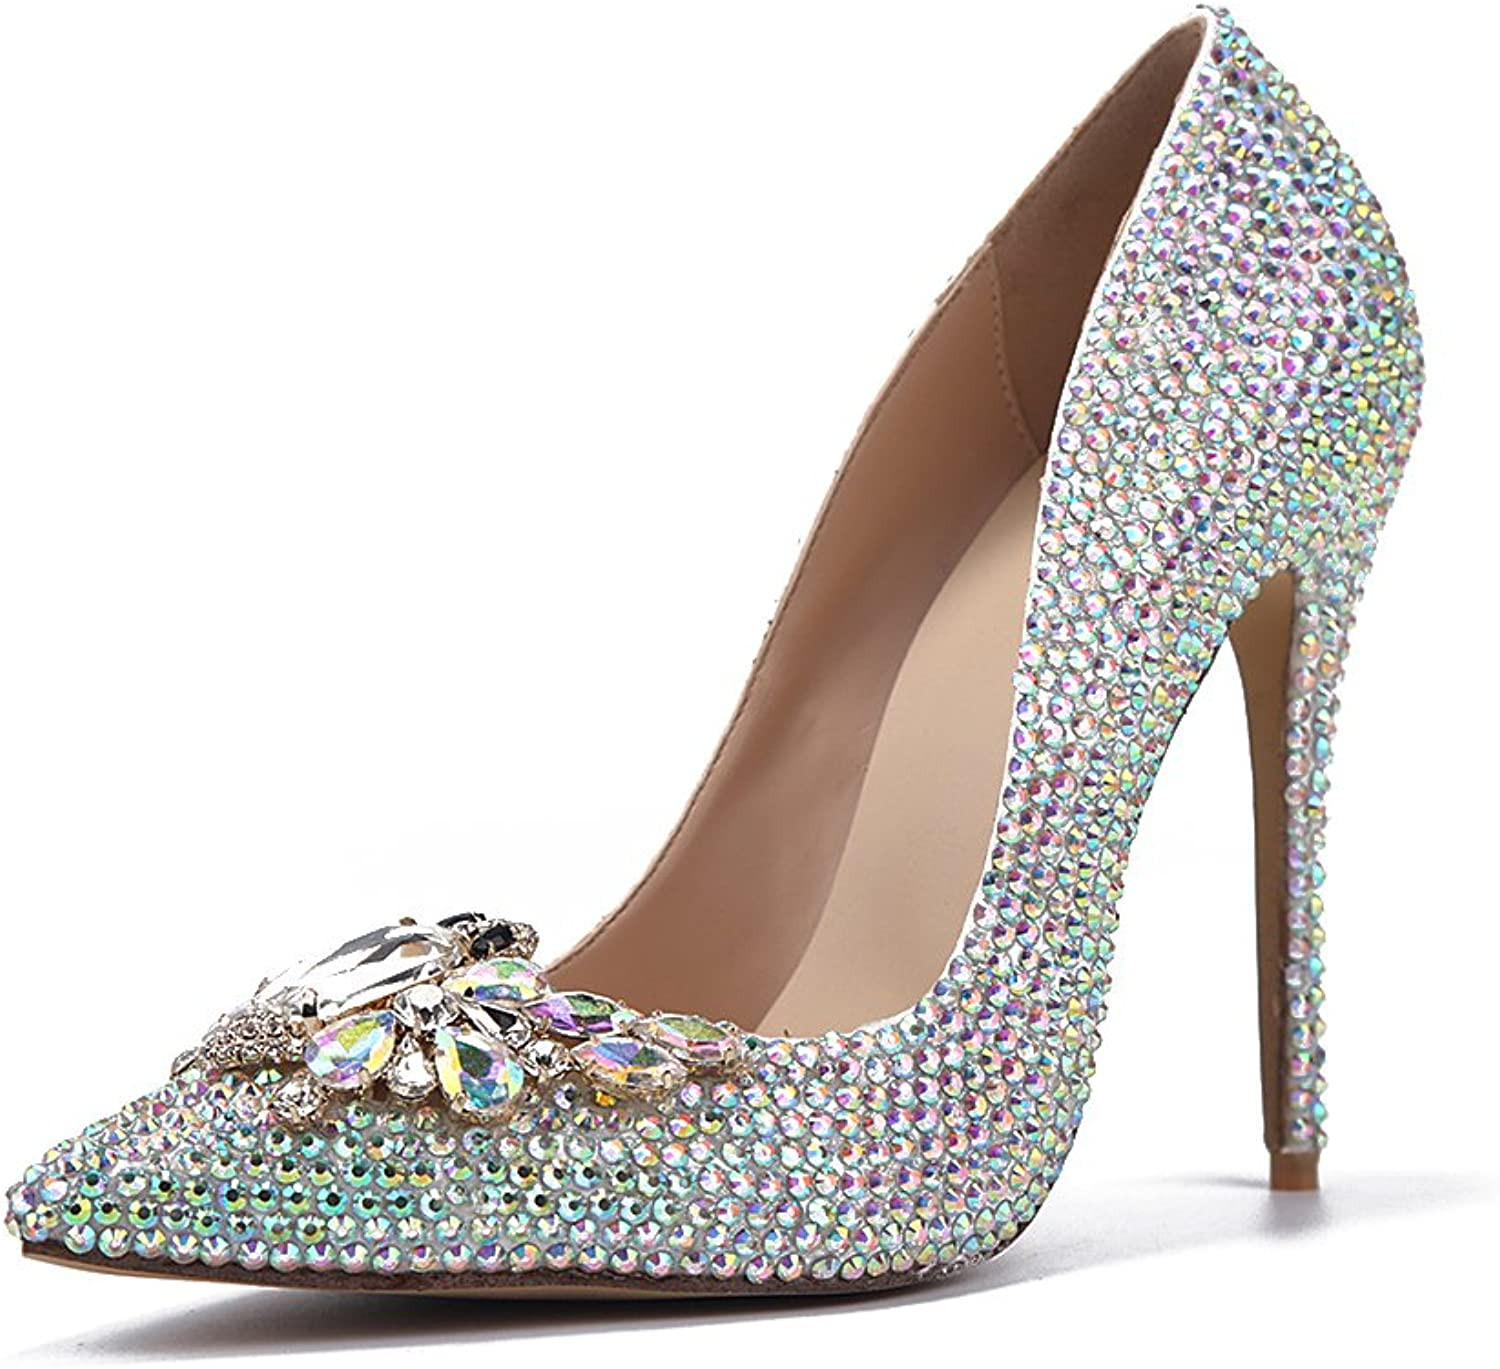 Lacitena High Heel Pumps Handmade Crystal Diamond Party Bridal shoes